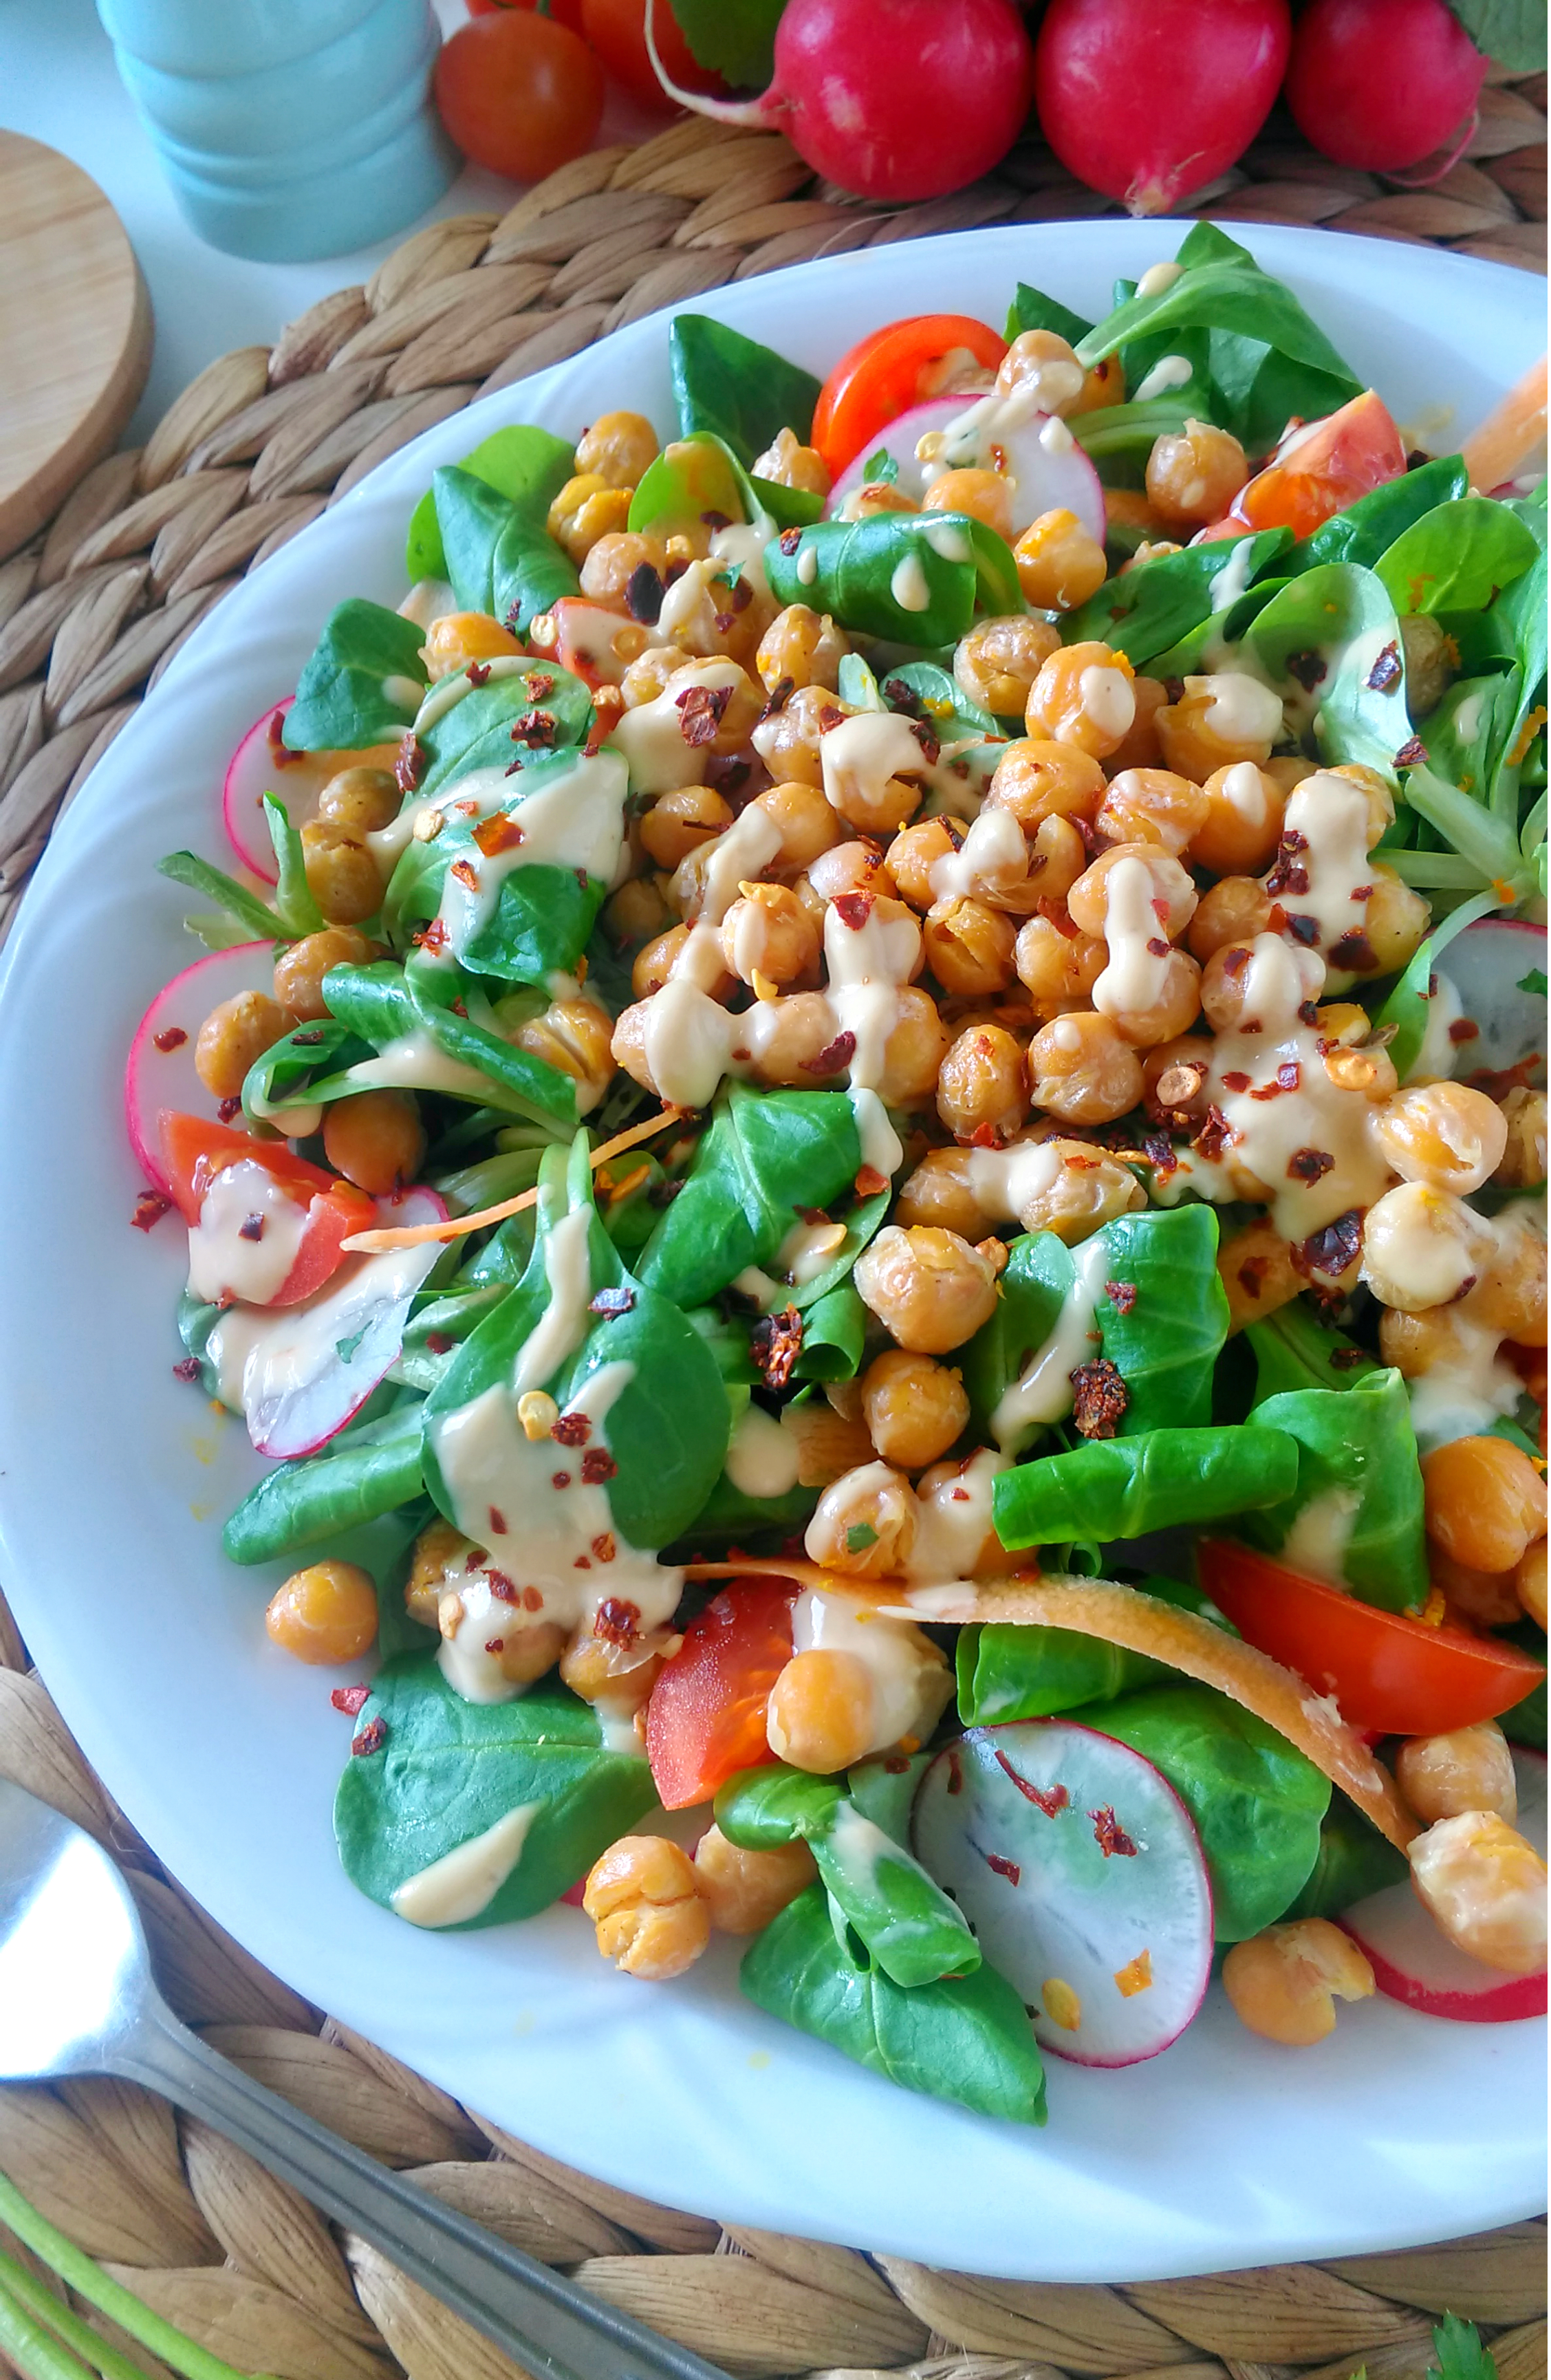 Baby_Spinach_and_Red Radish_Salad_with_Roasted Chickpeas_and_Tahini_Dressing_recipe_DIYBITES